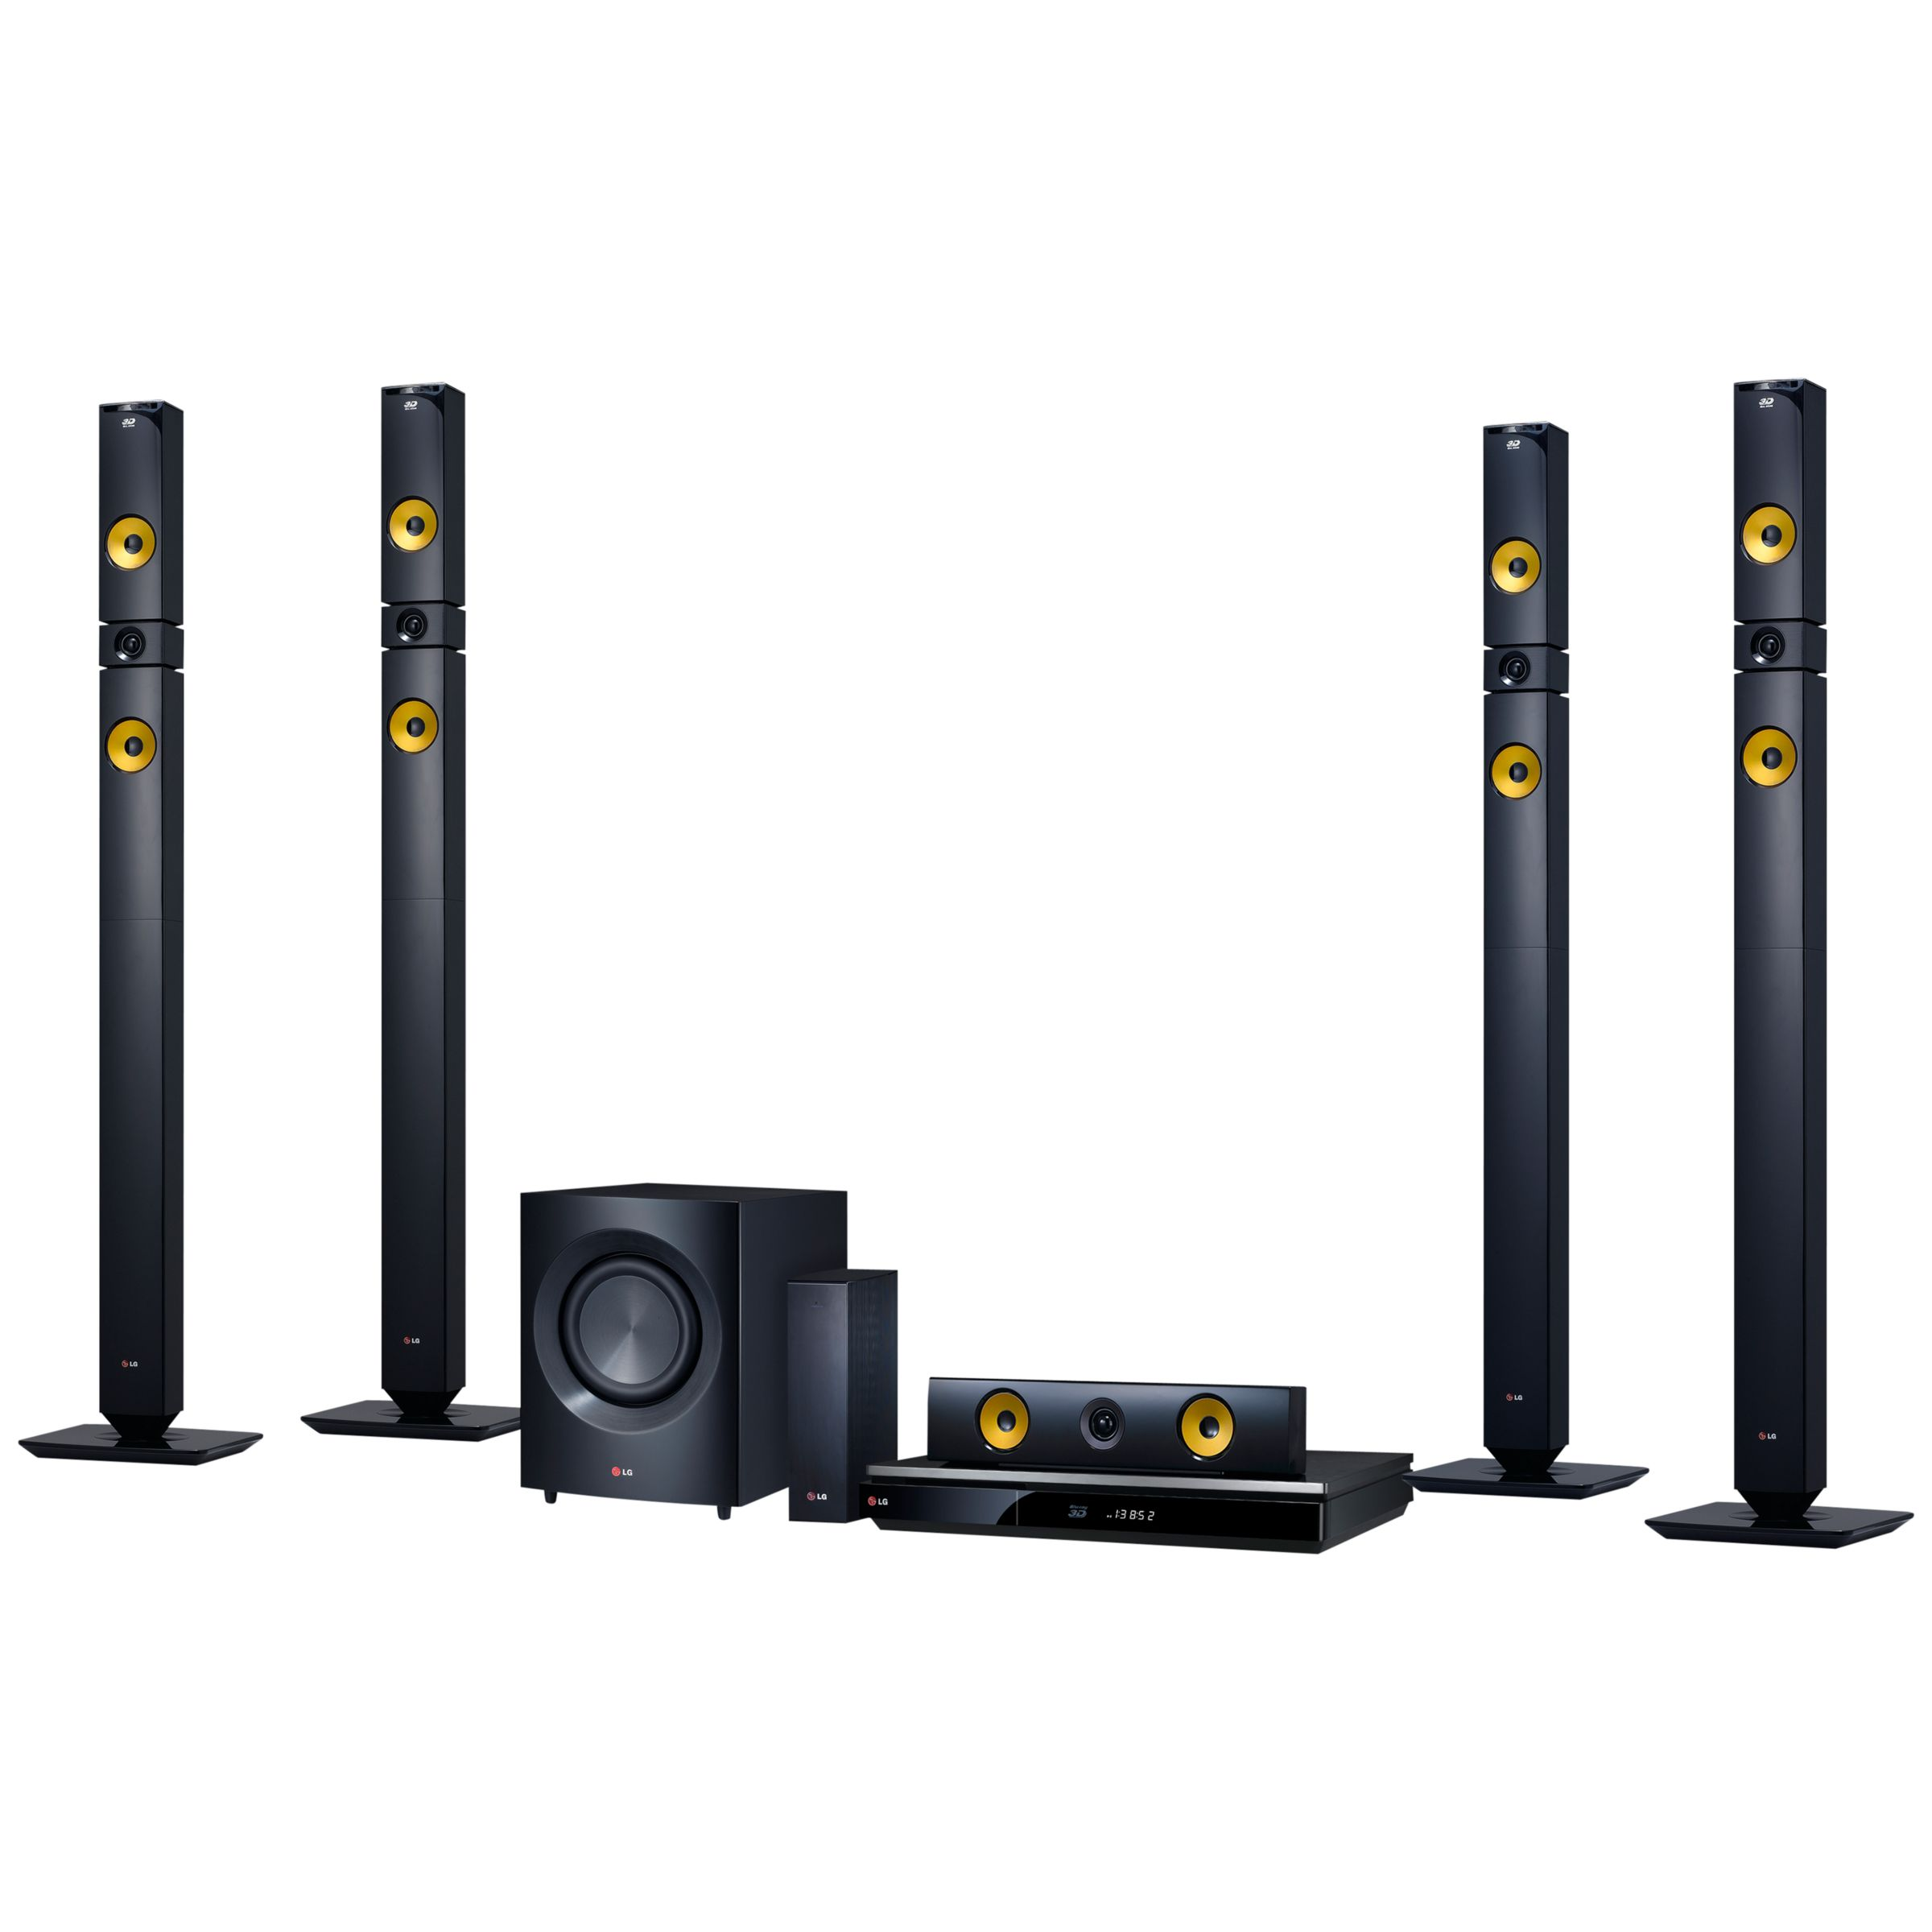 lg surround sound system shop for cheap home cinema and. Black Bedroom Furniture Sets. Home Design Ideas